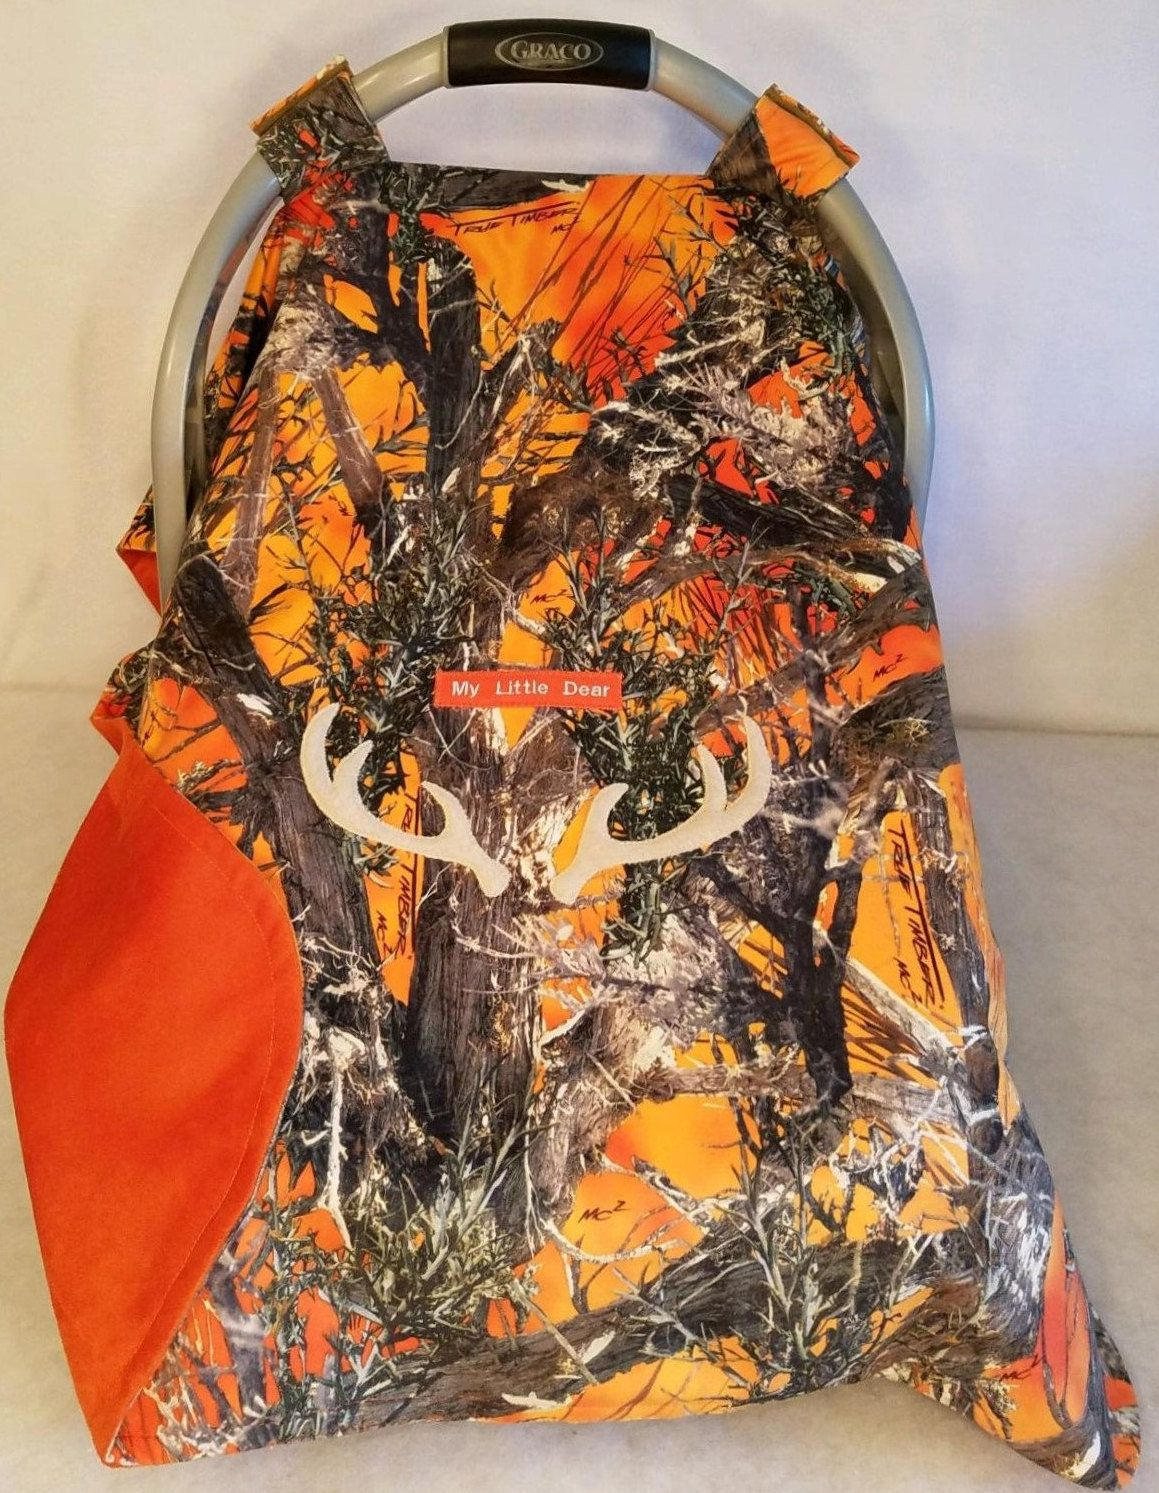 Car Seat Canopy Blaze Orange Camo Baby True Timber Faux Suede Cozy Custom Embroidery My Little Dear Or Camo Baby Stuff Outdoor Baby Gear Small Baby Blankets